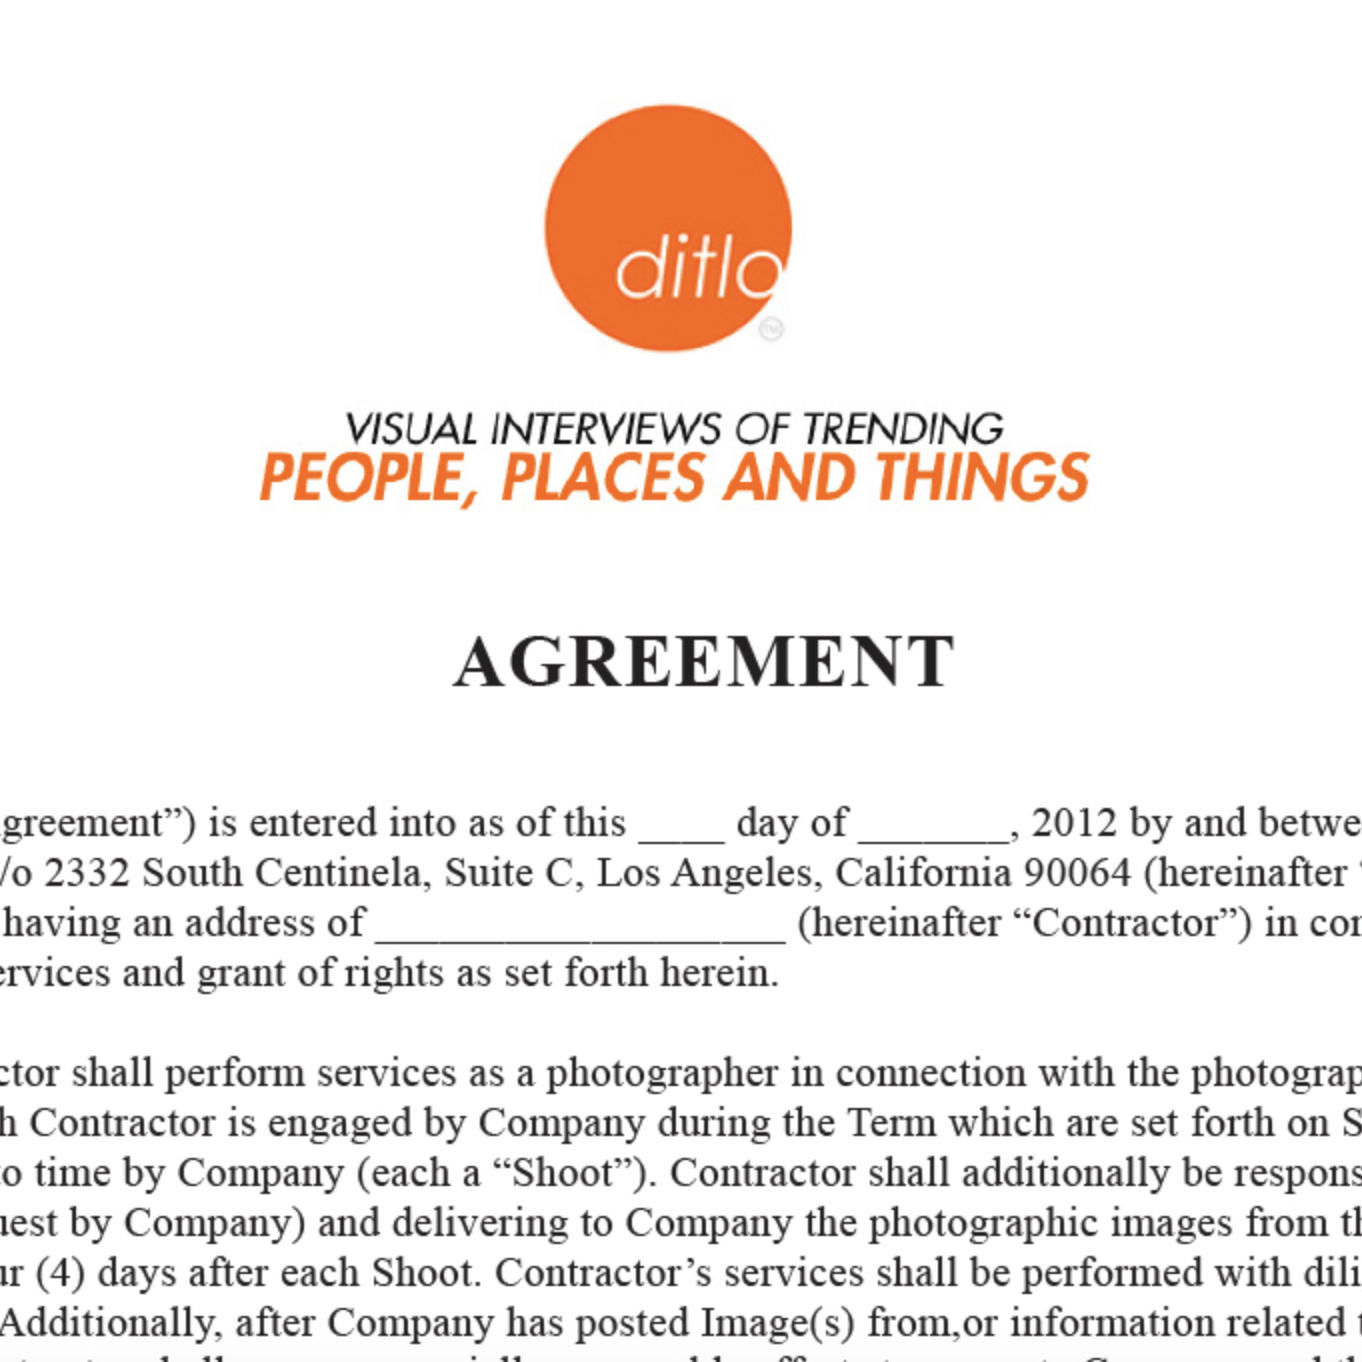 Pricing & Negotiating: DITLO Contract